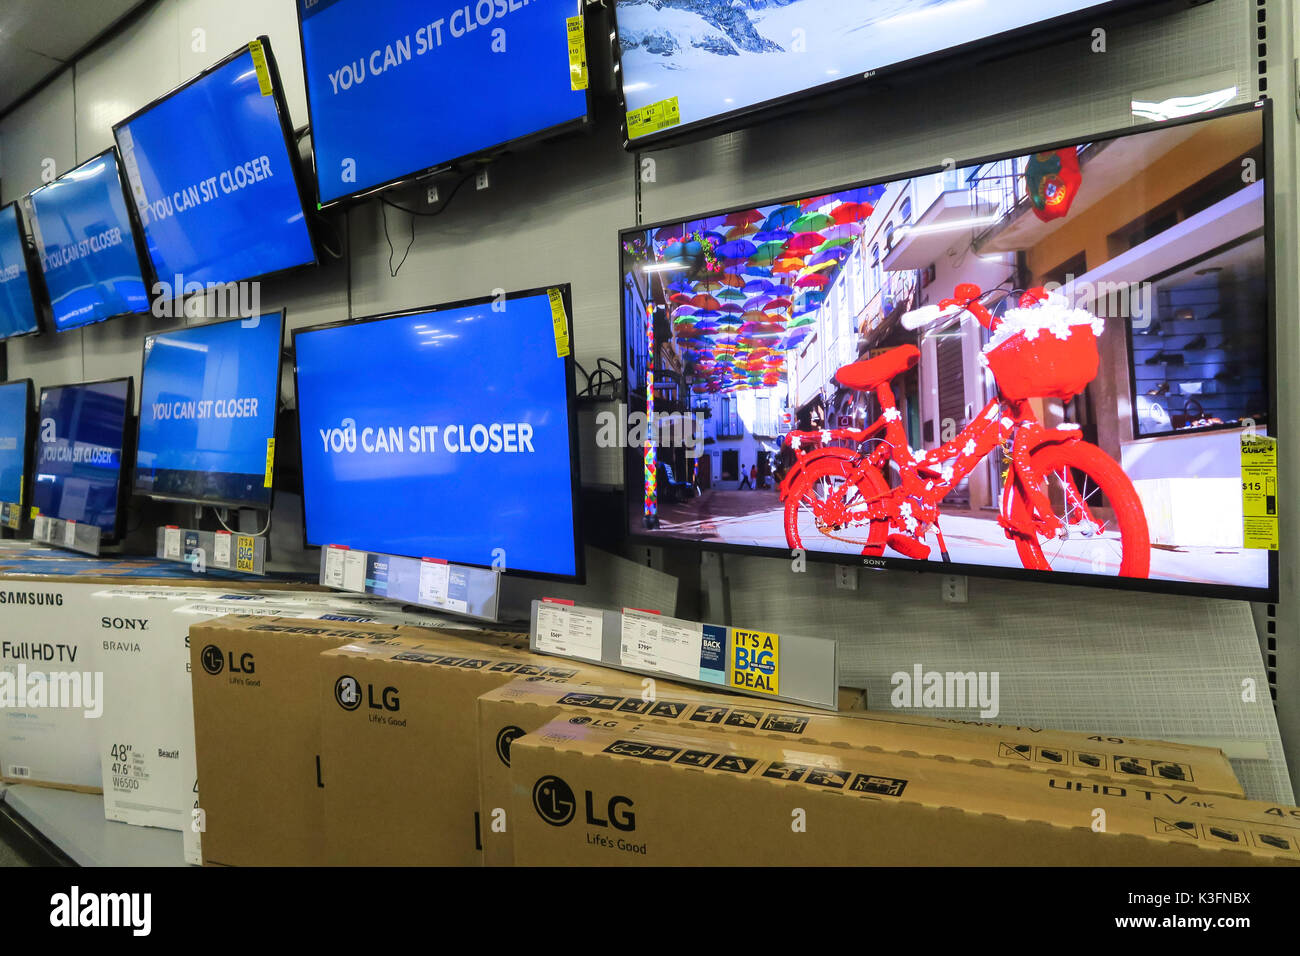 Usa Buy Best Buy Electronics Store Nyc Usa Stock Photo 157083358 Alamy